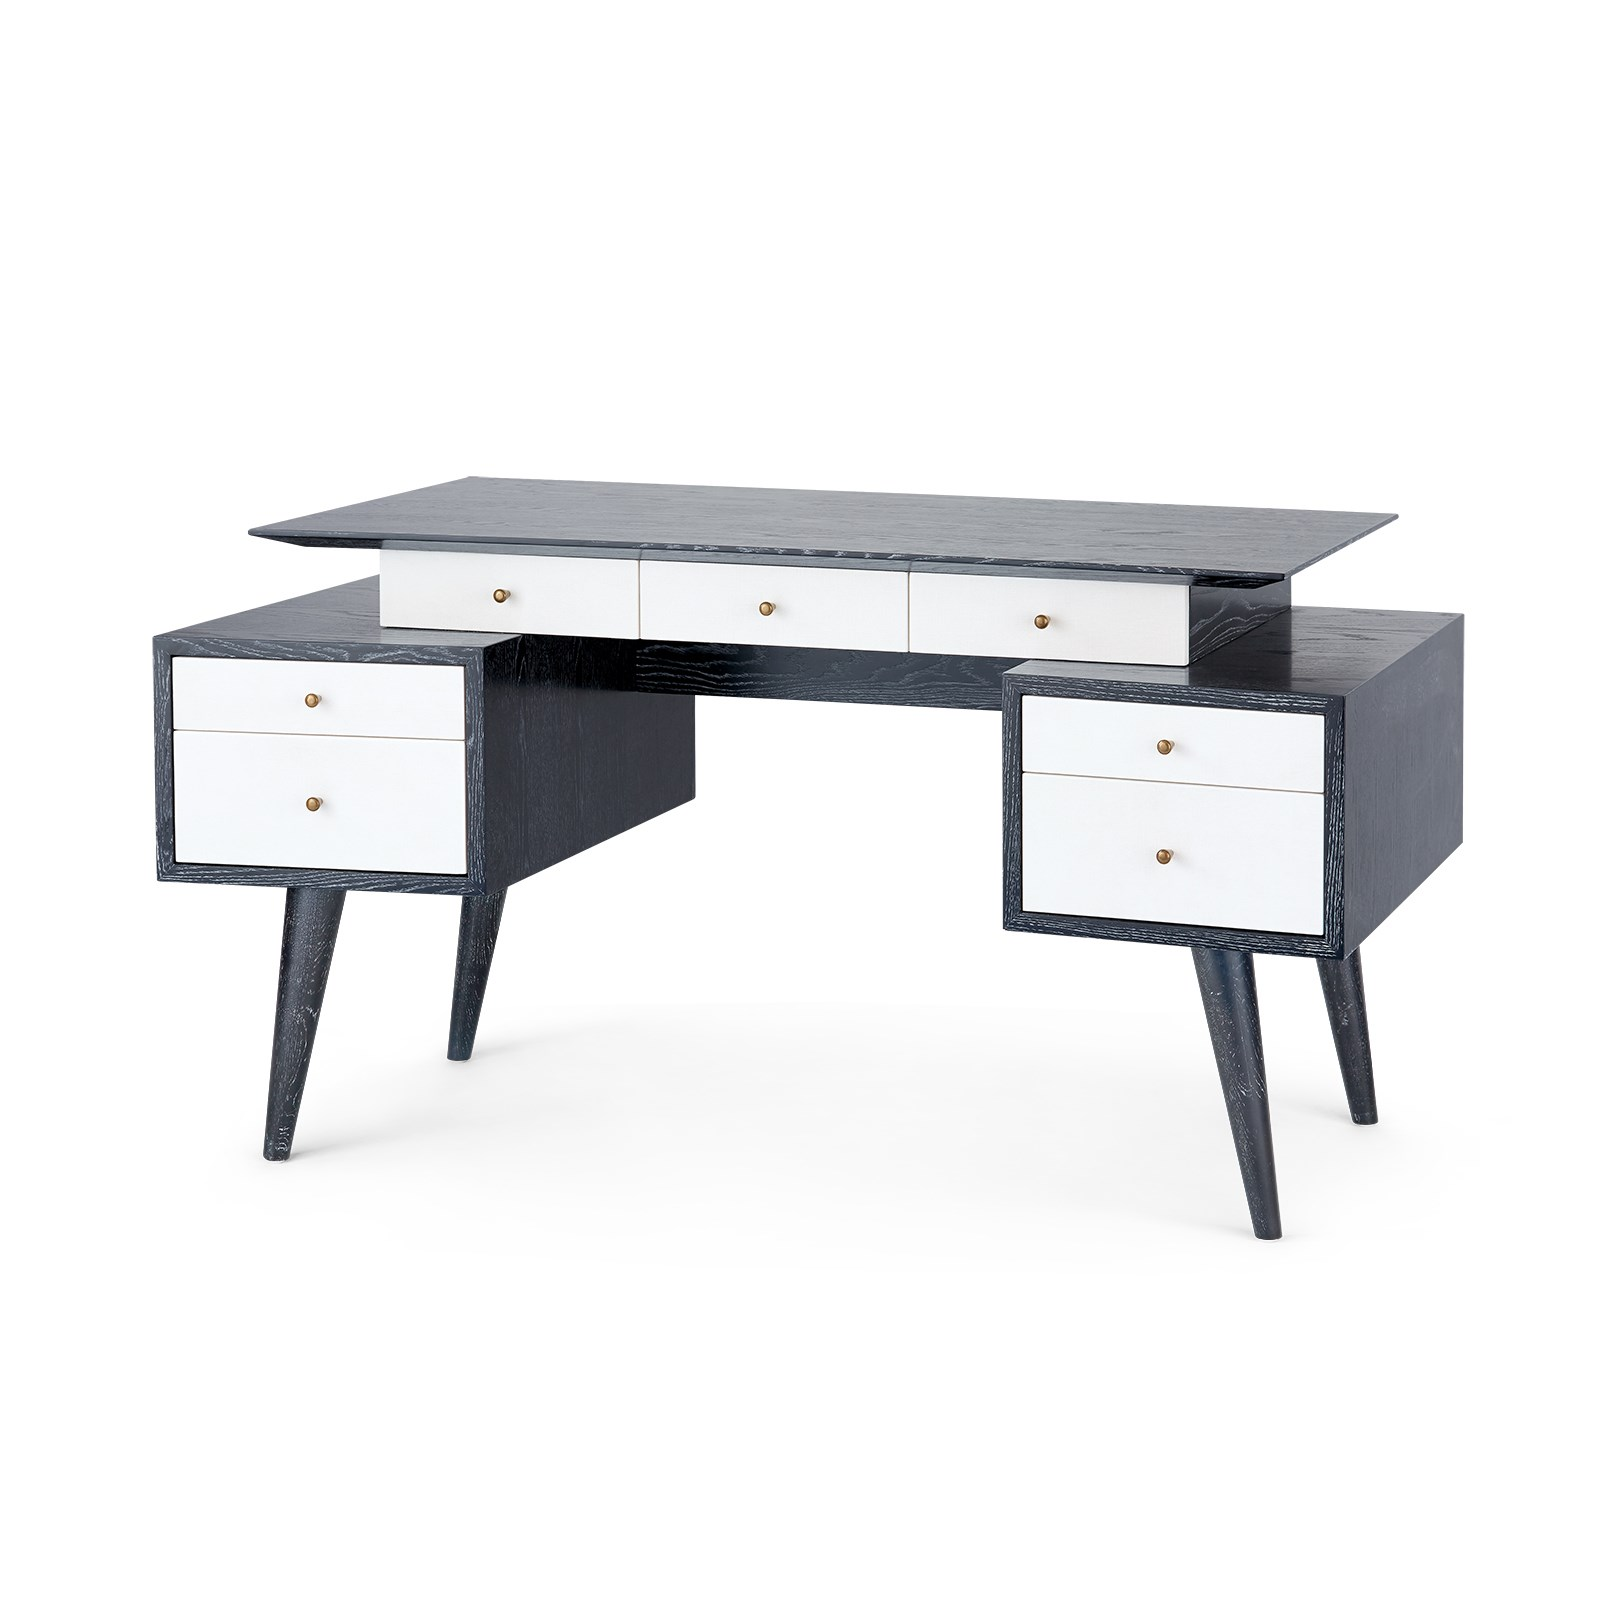 Serena desk black bungalow 5 for Bungalow 5 desk